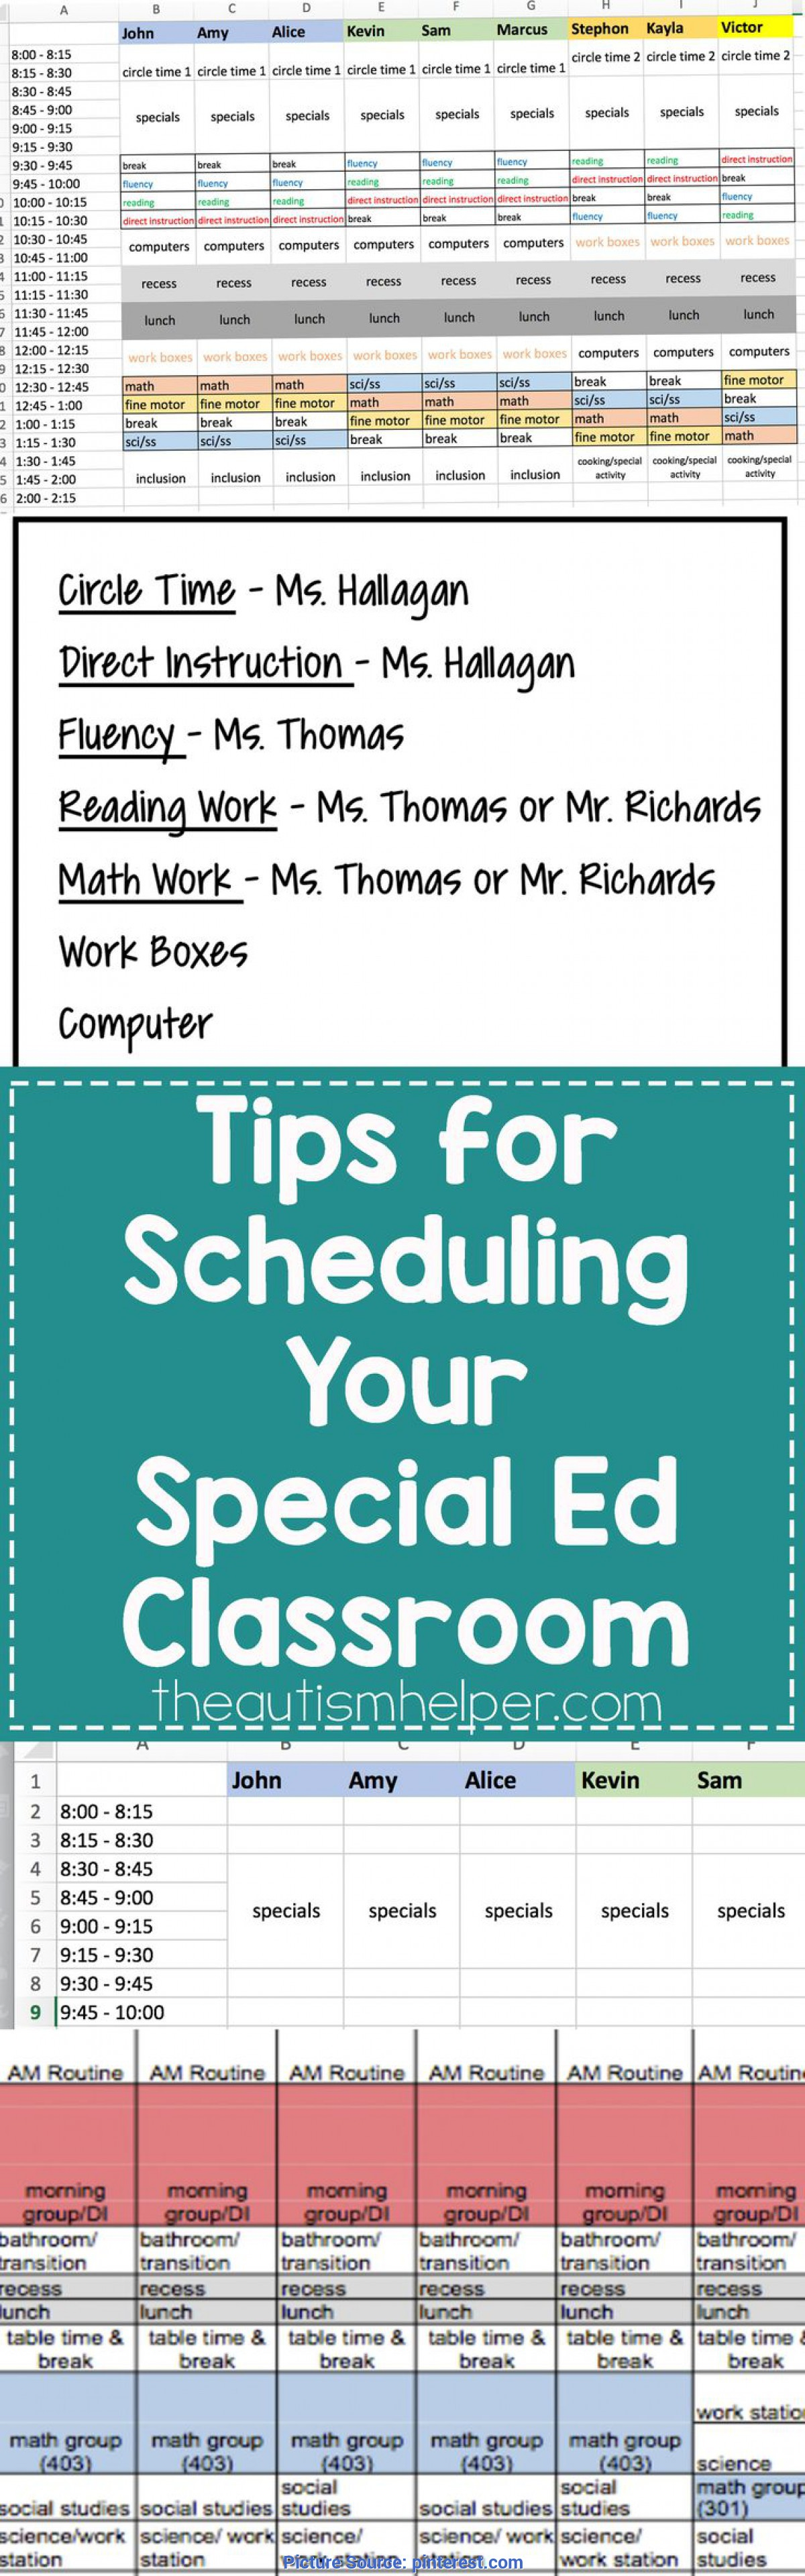 Unusual Lesson Plan Book Special Education Best 25+ Elementary Special Education Ideas On Pinterest | Specia